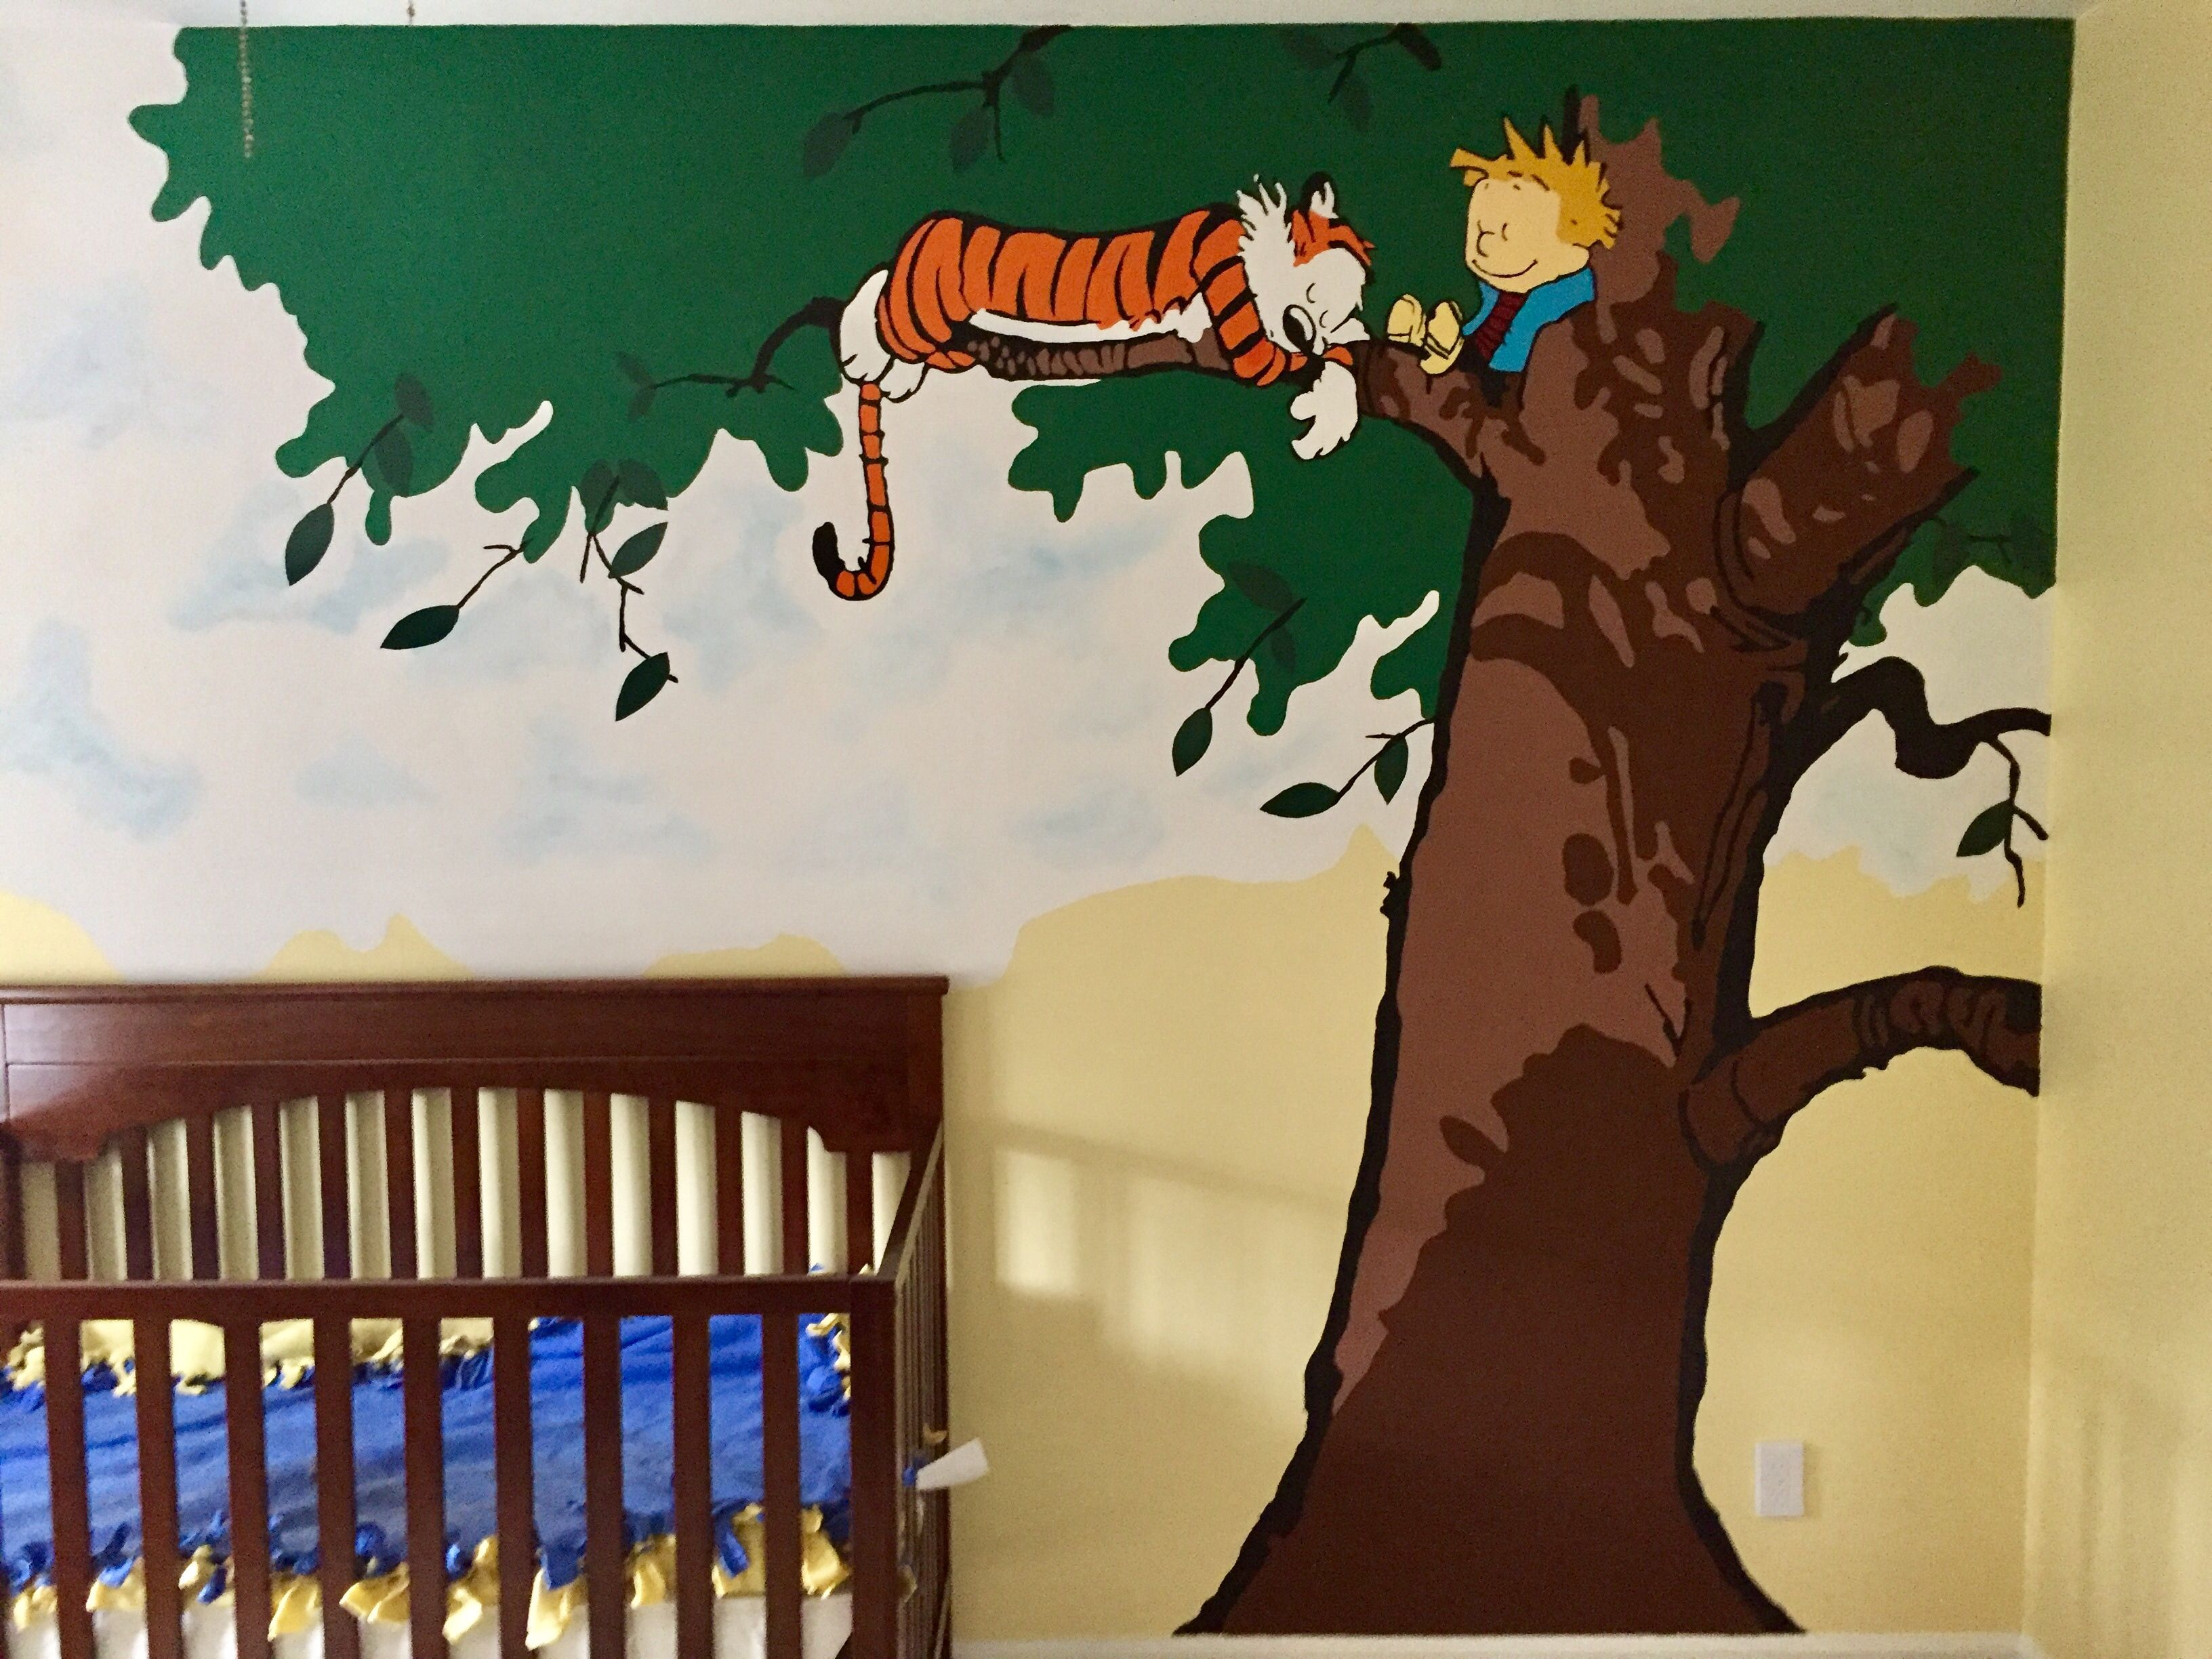 Another calvin hobbes nursery mural x post rcalvinandhobbes another calvin hobbes nursery mural x post rcalvinandhobbes nursery muralshandmade craftsscenediy solutioingenieria Images